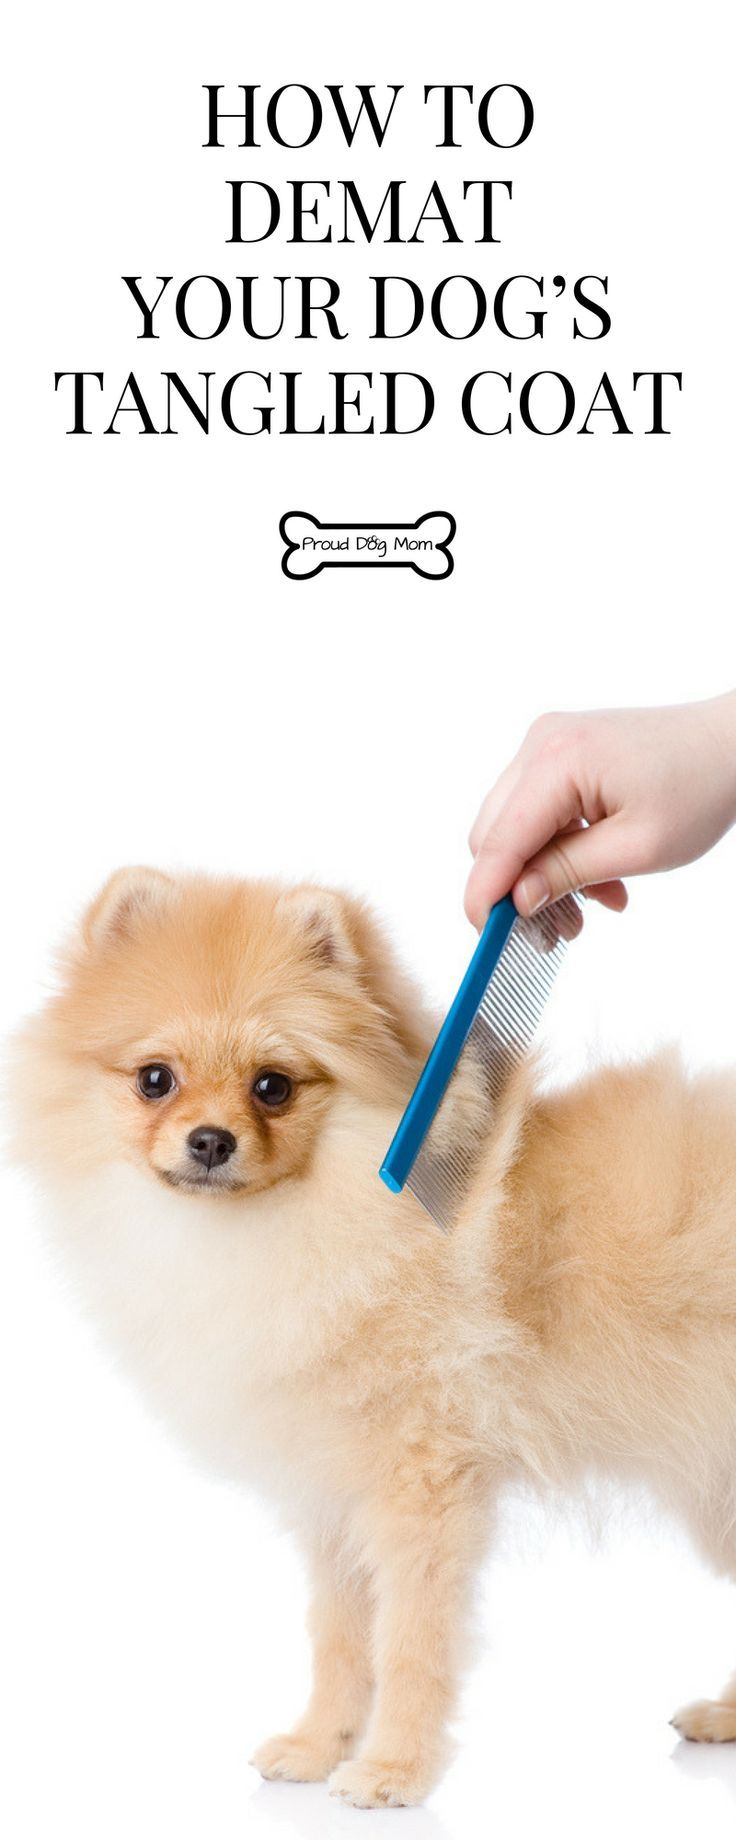 Home Grooming Tips How To Demat Your Dog S Tangled Coat Dog